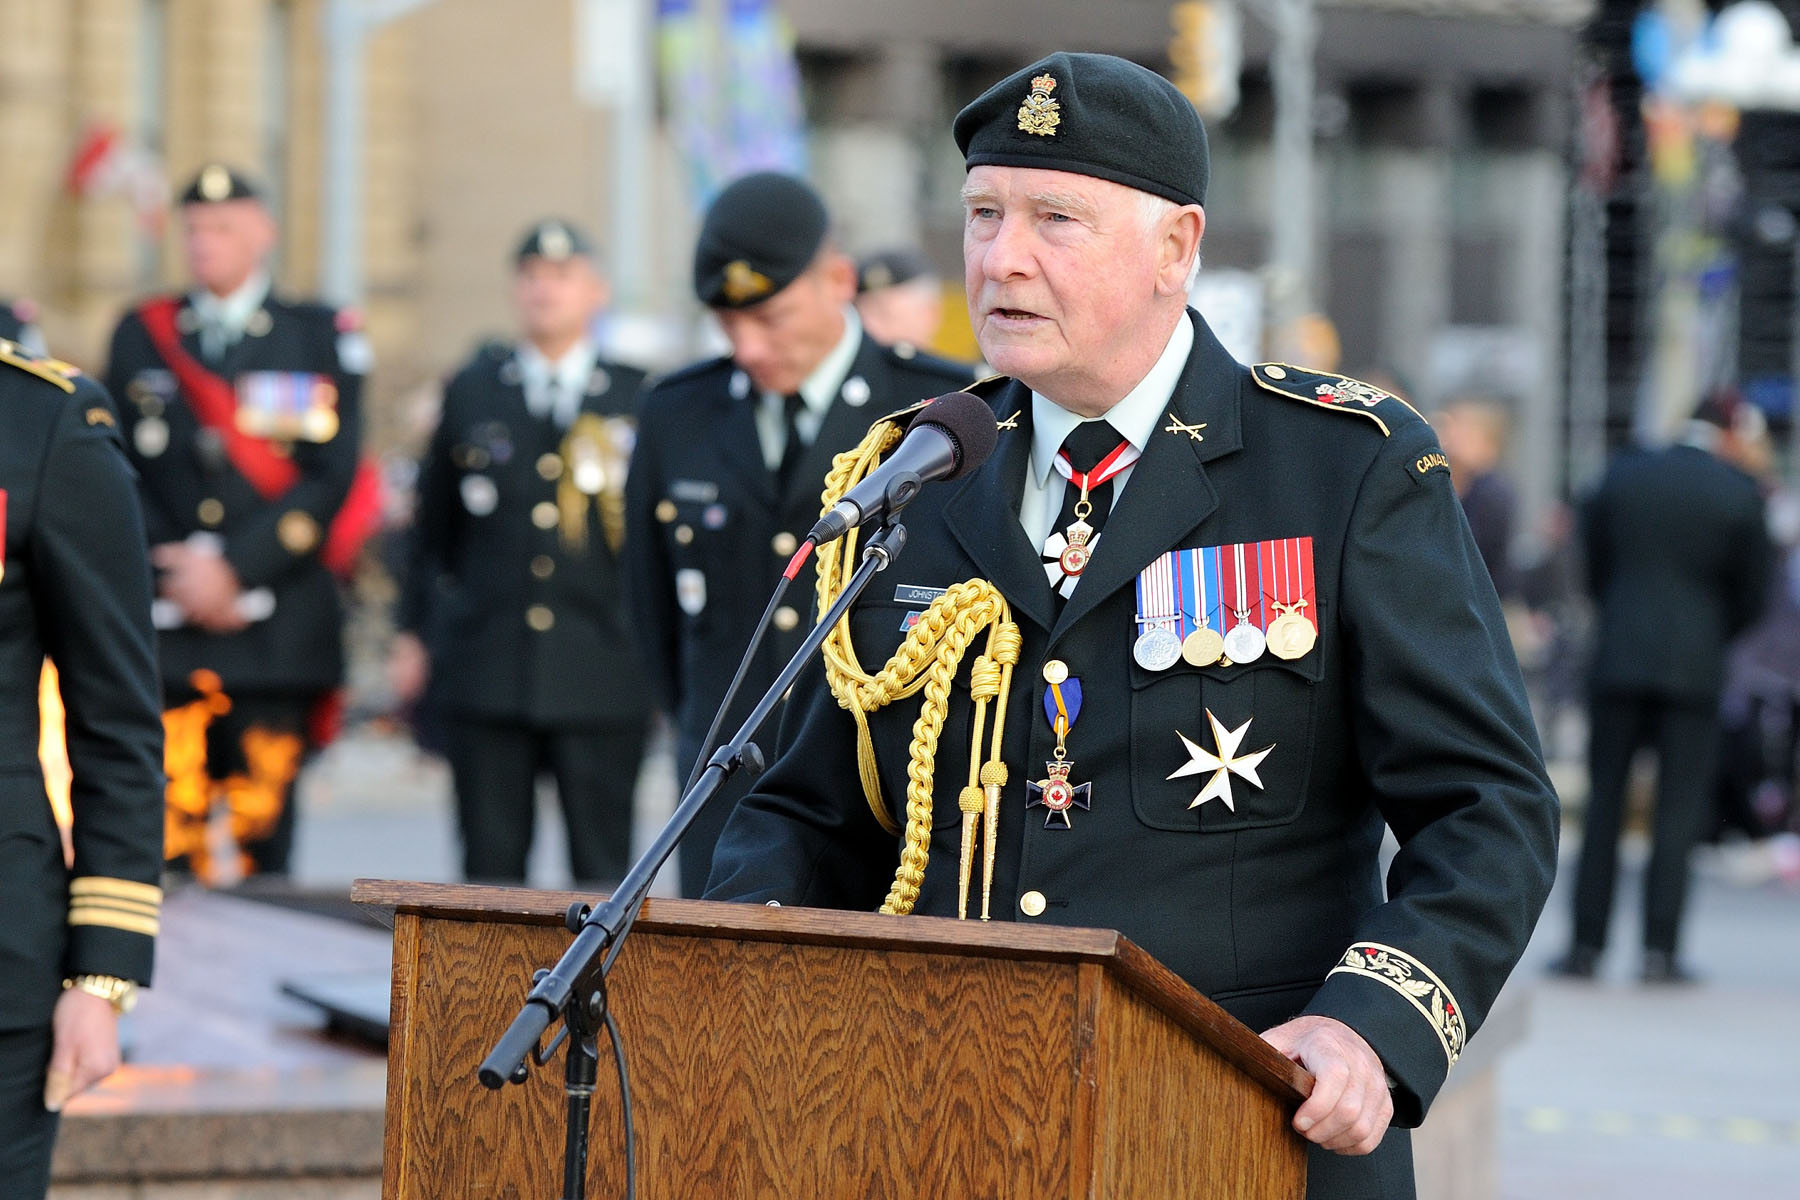 """I am honoured to be with all of you here on Parliament Hill for this celebration of two regiments that have played a vital role in our country's history: Princess Patricia's Canadian Light Infantry and the Royal 22e Régiment. You may have different backgrounds—an infantry whose original soldiers were primarily of British descent, and the first all-French regiment in Canada—but you have much in common. You both fight for the same causes, and protect our nation, our people, our ideals and our freedoms,"" said His Excellency."